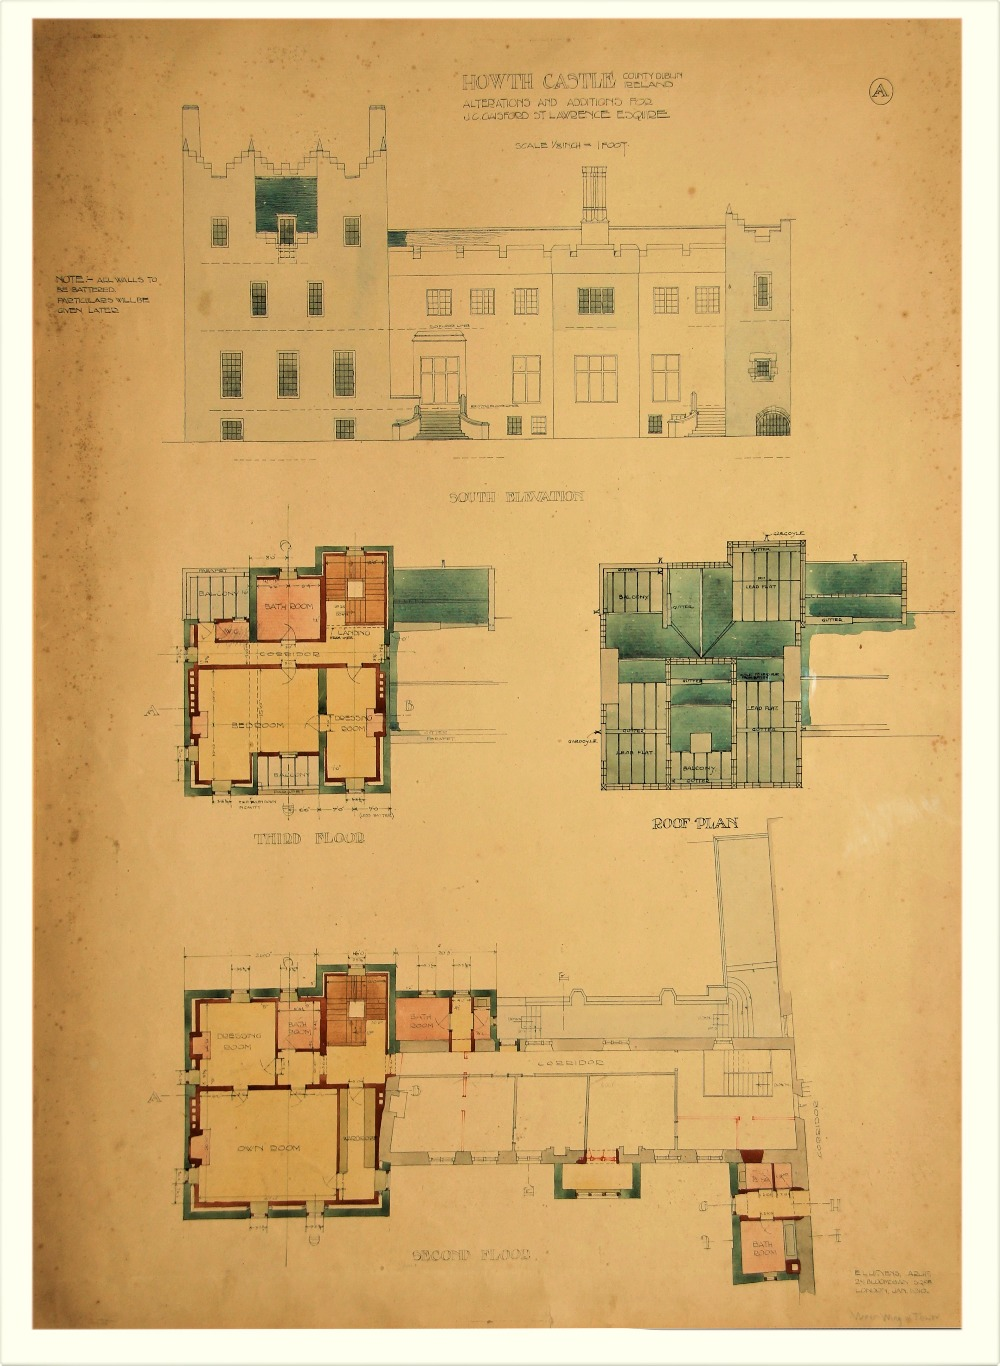 Sir Edward L. Lutyens 1869 - 1944 Howth Castle Plans: A Series of 10 Prototype Architect Drawings - Image 2 of 6